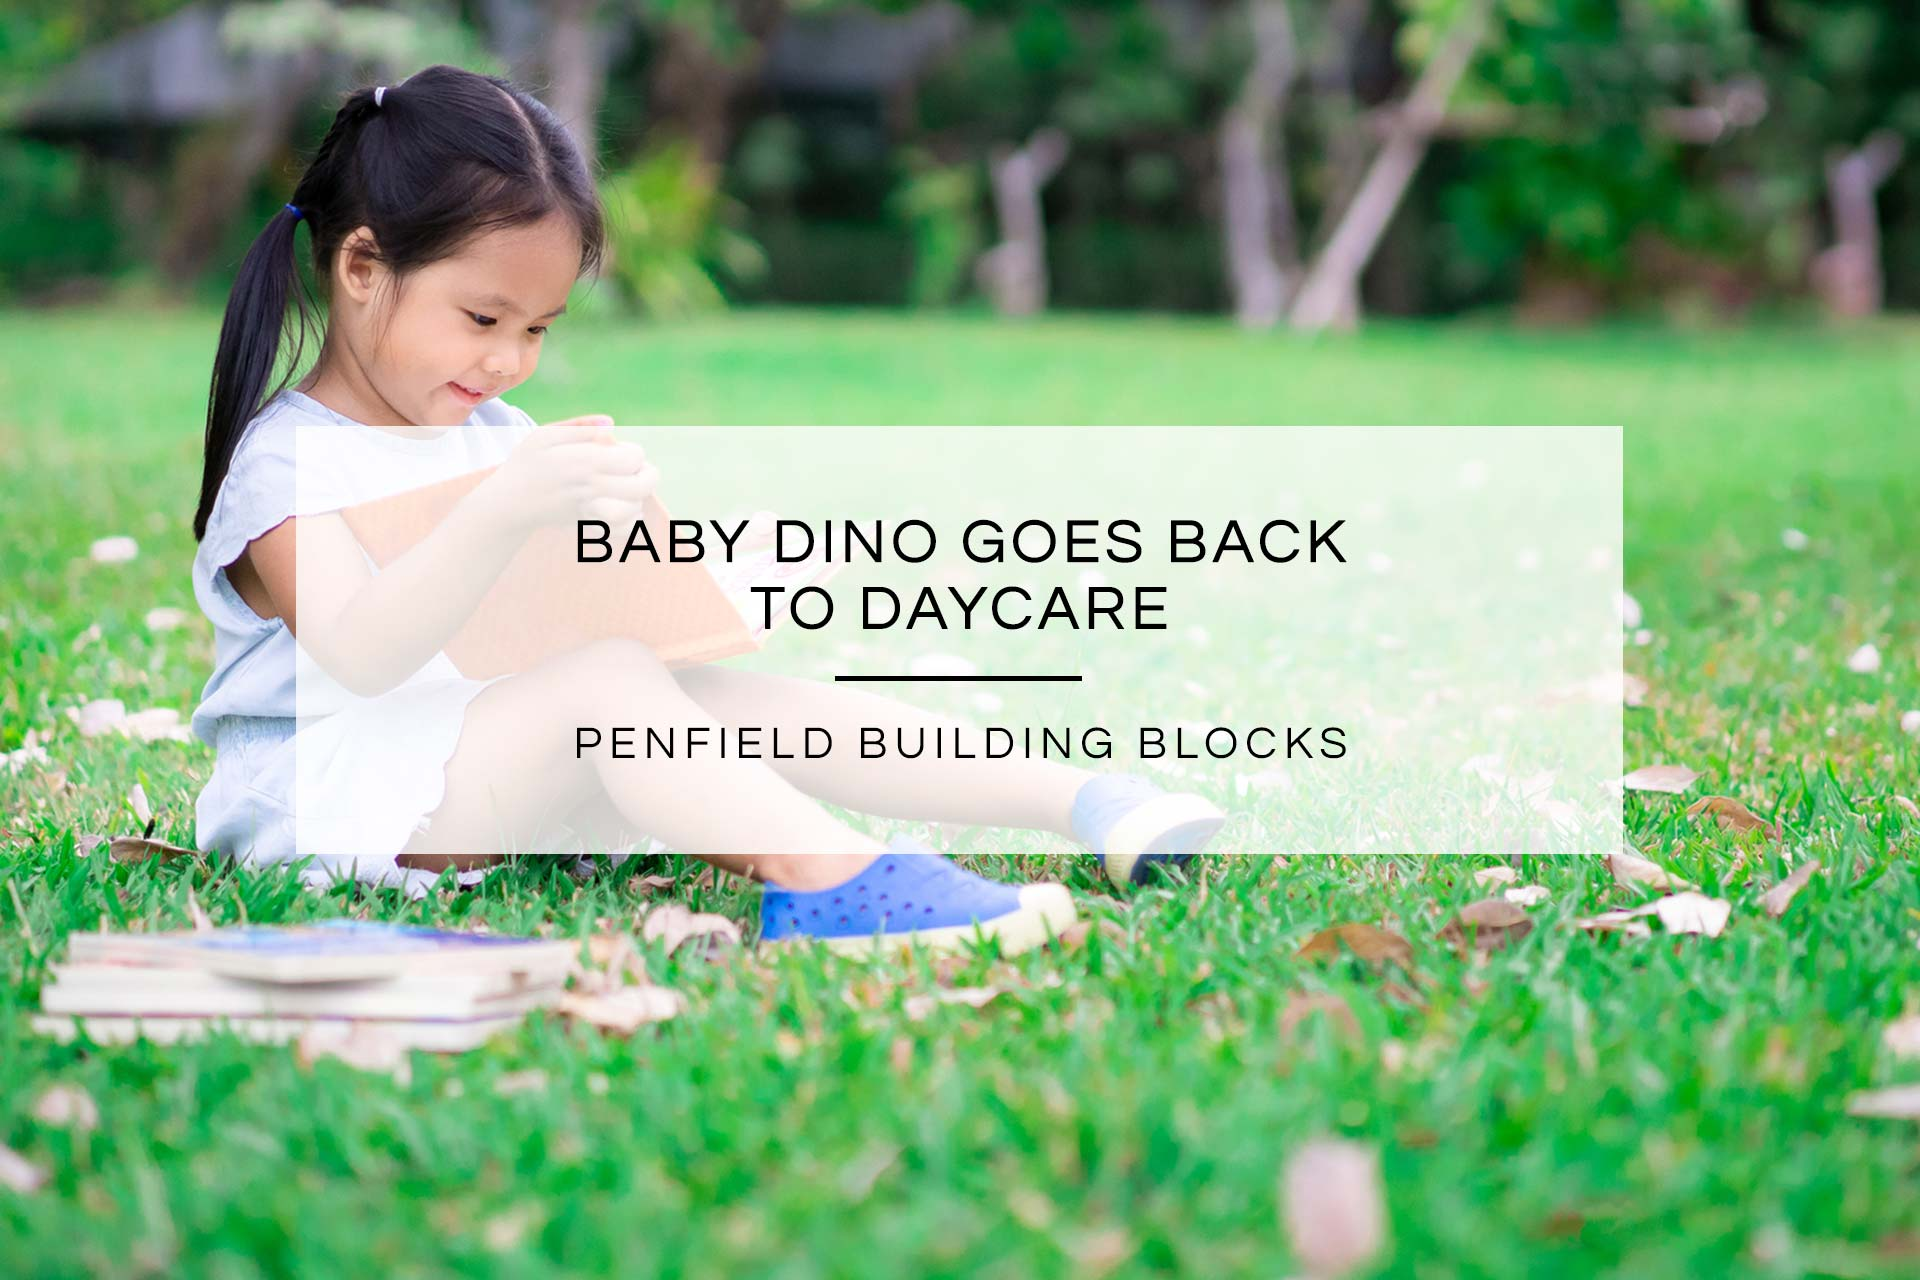 Baby Dino Goes Back To Daycare | Penfield Building Blocks